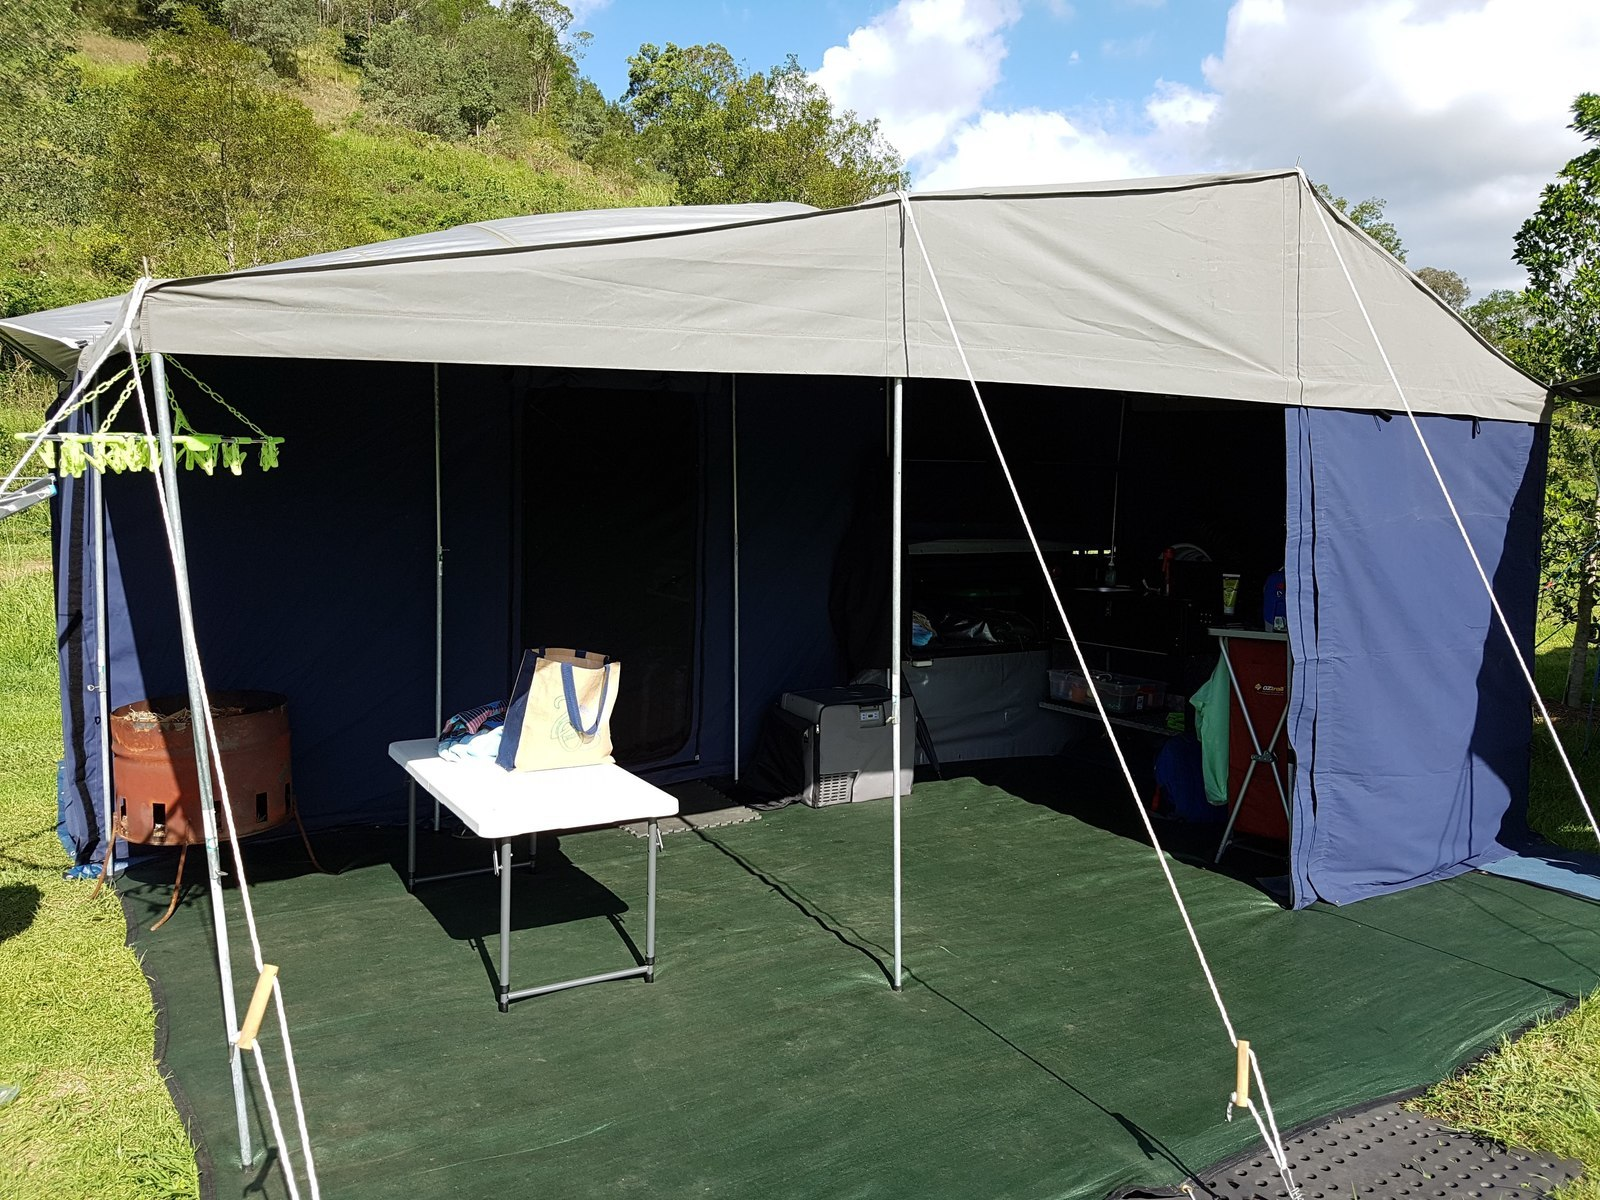 Soft Floor Camper Trailer For Hire In Woombye Qld From 60